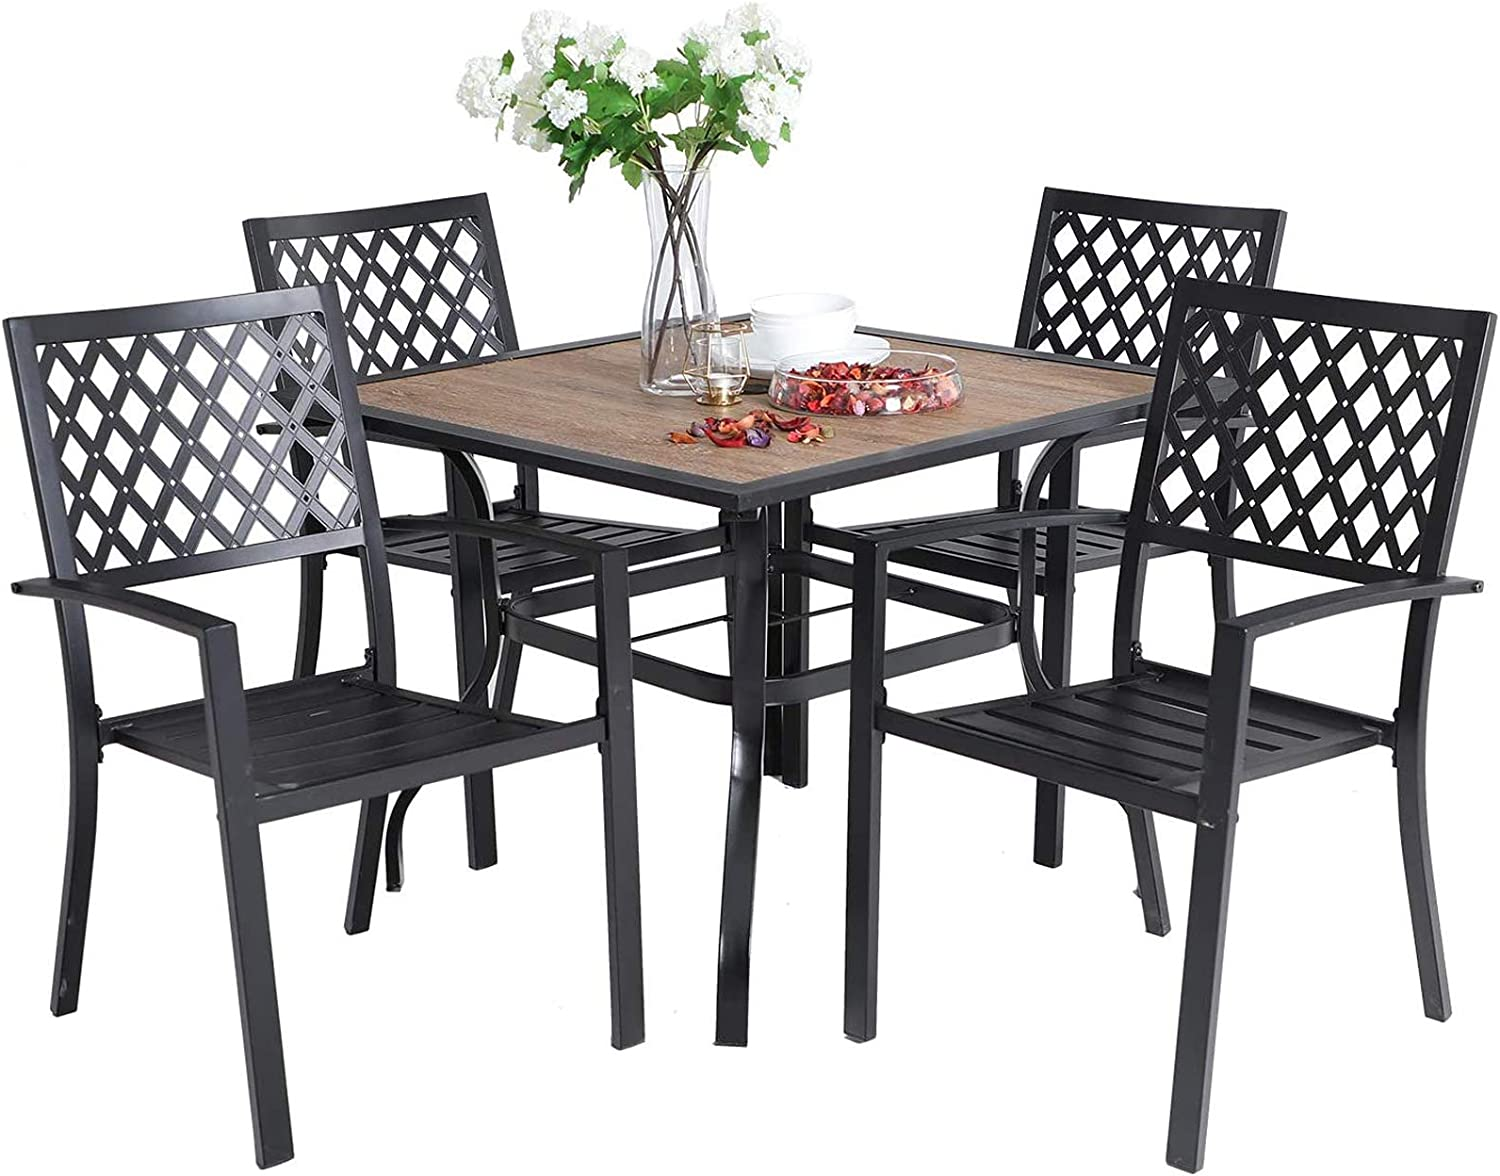 """Sophia & William 5 Piece Outdoor Patio Dining Set Metal Table and Chairs Set with 37"""" Wood-Like Table Top and Umbrella Hole"""